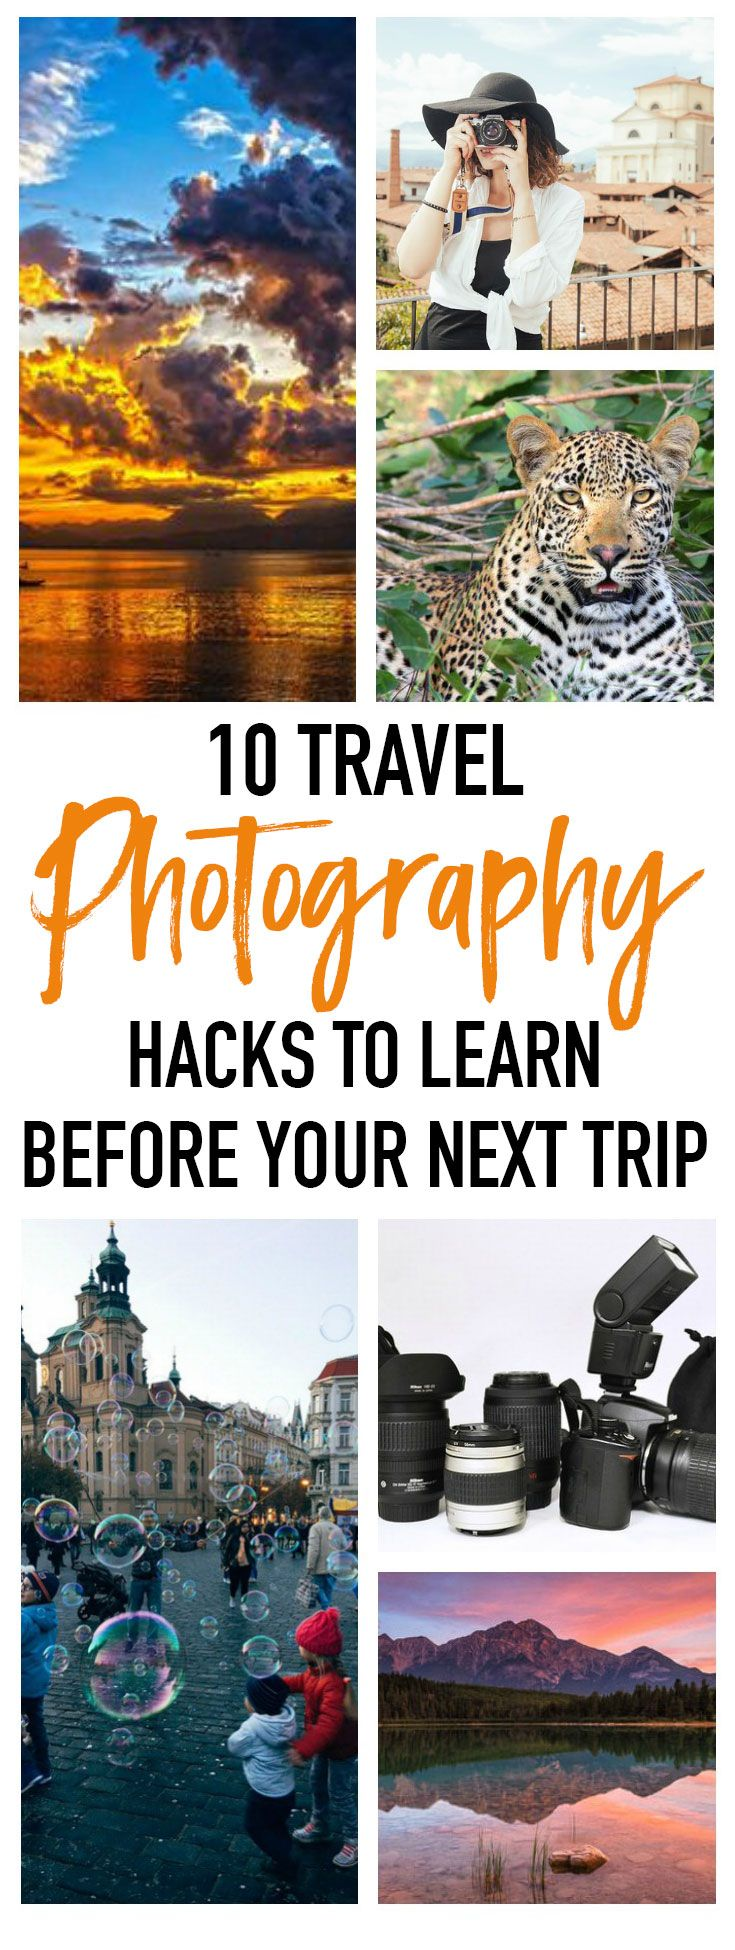 From city lights to tropical sunsets, these 10 travel photography hacks will help you prepare for whatever your next vacation throws at you.